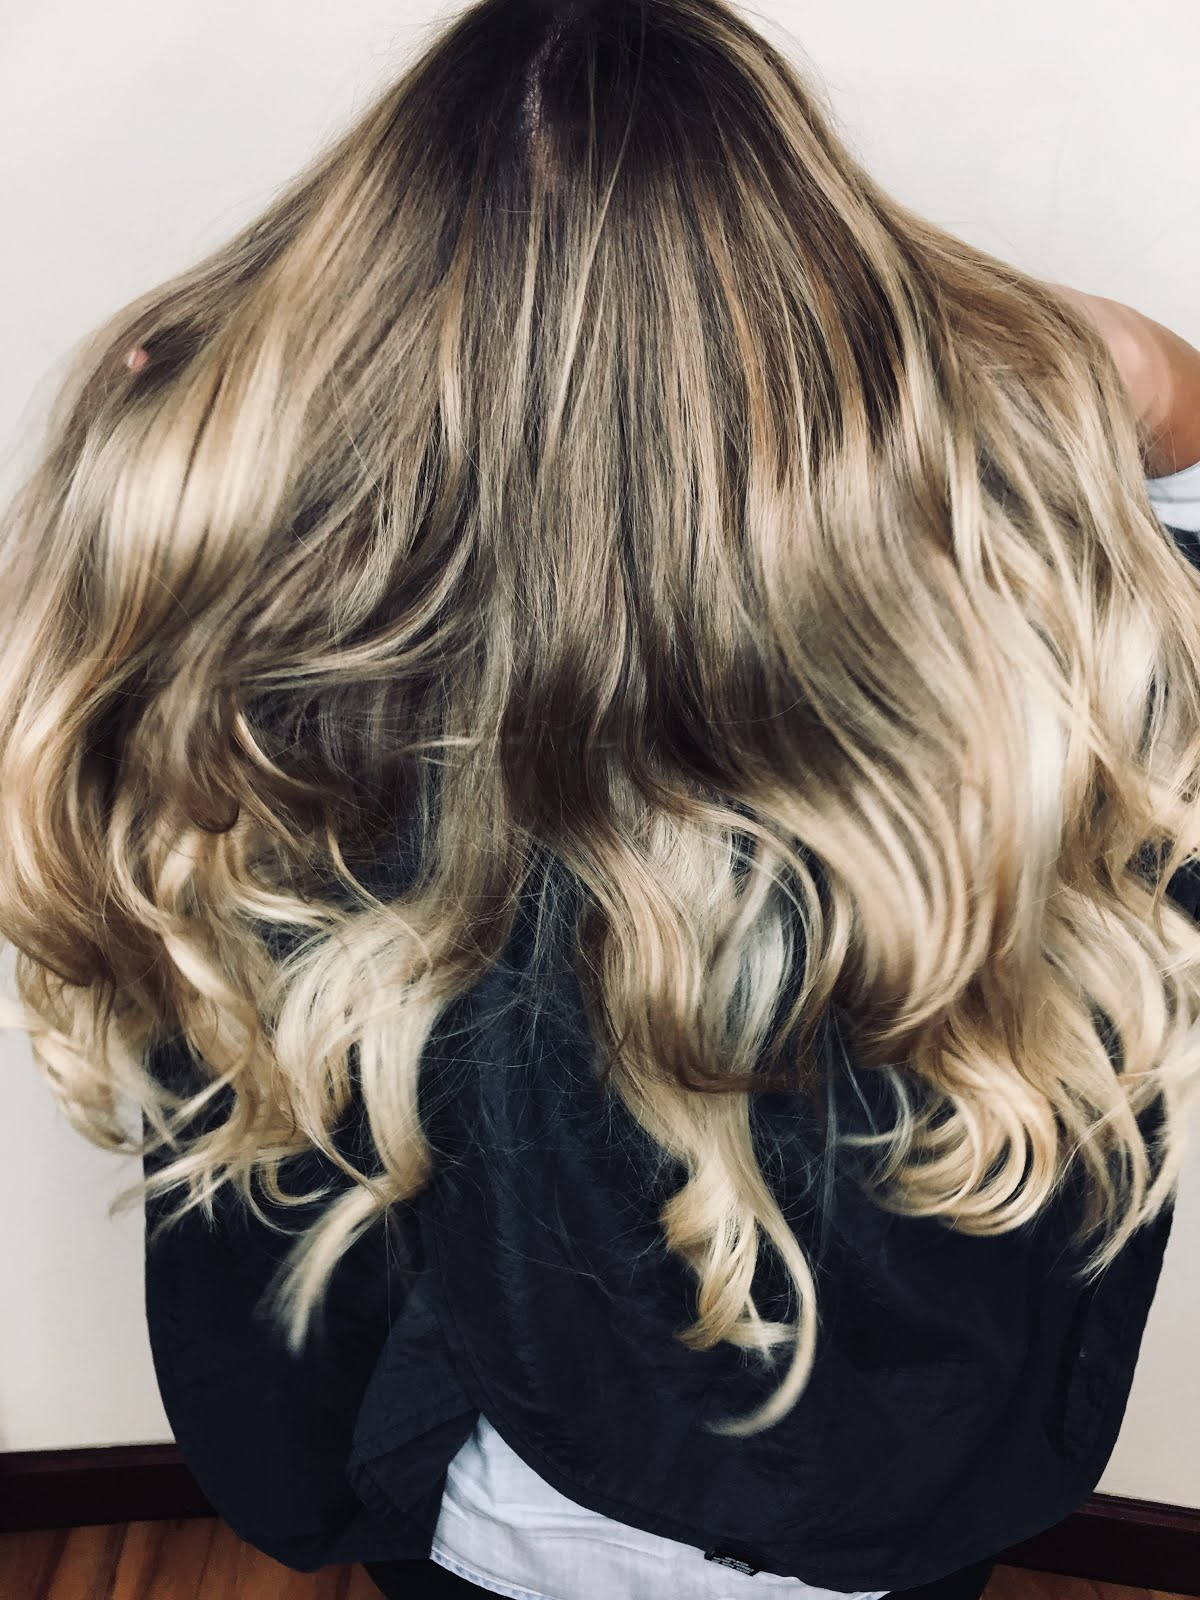 The Best Hair Extensions Products to Use featured by popular Denver style blogger, Delayna Denaye